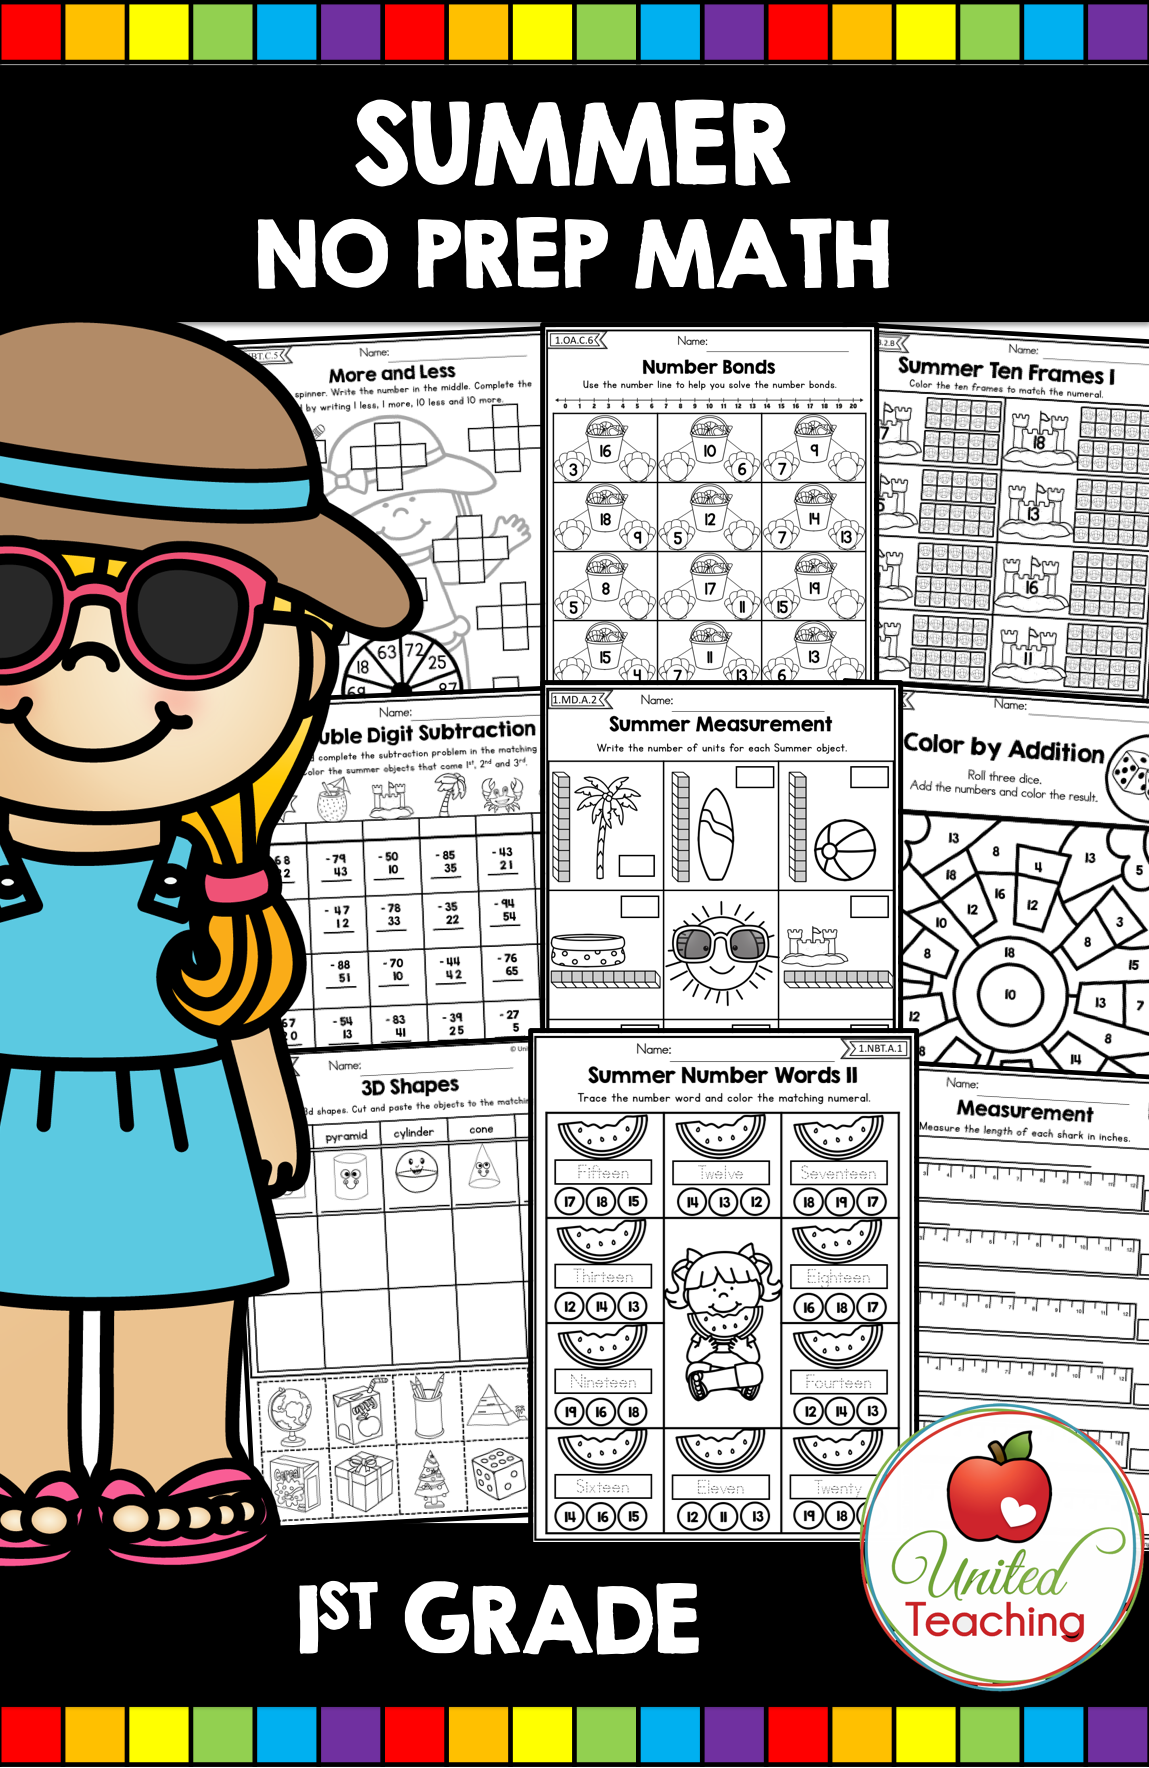 Summer Math Packet 1st Grade Distance Learning